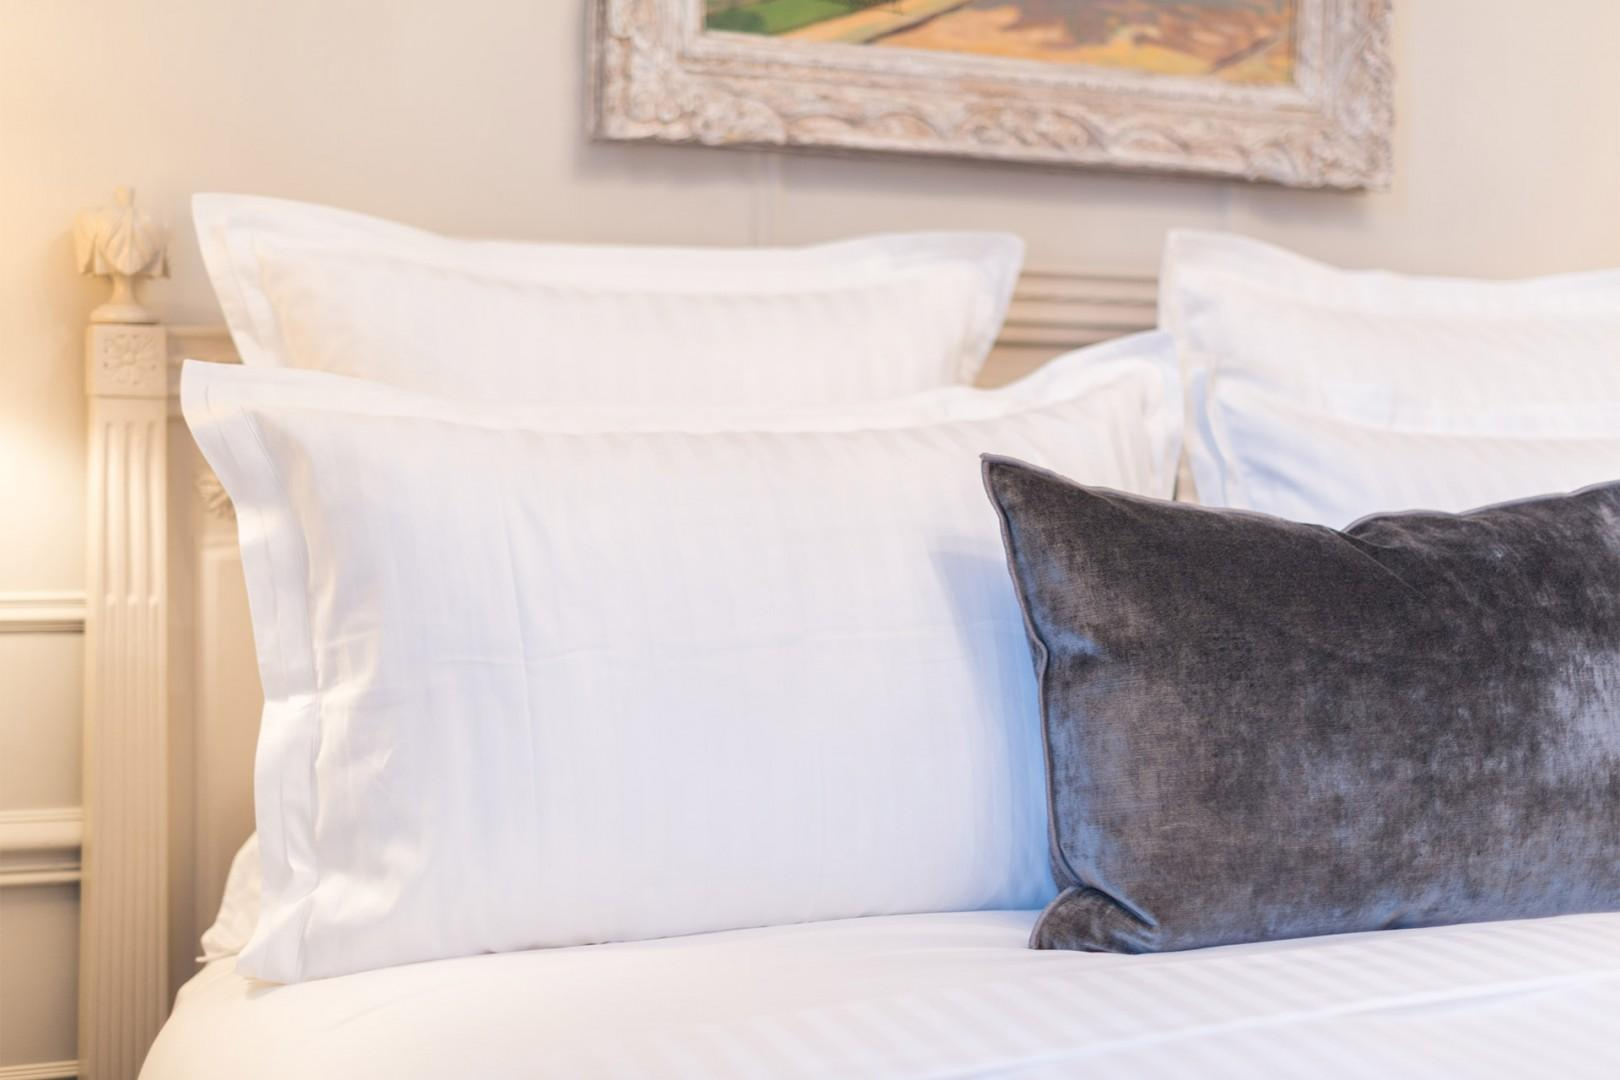 Our guests love the quality linens.